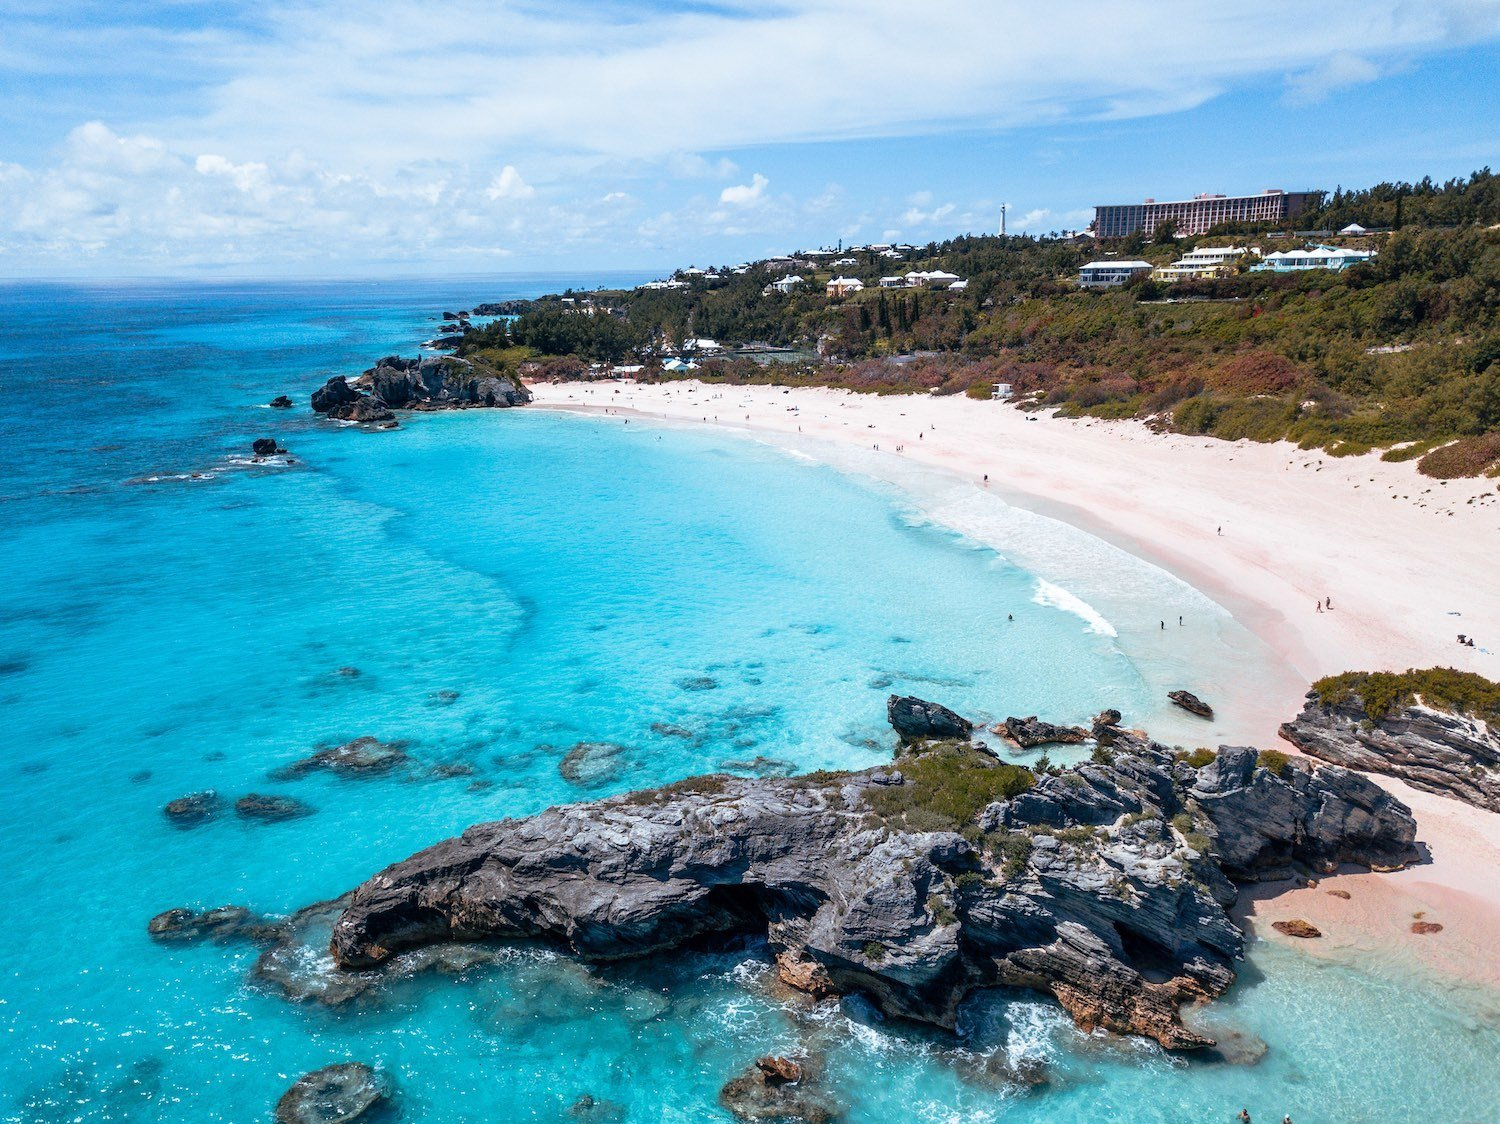 Bermuda Travel Guide - Where is hot in January